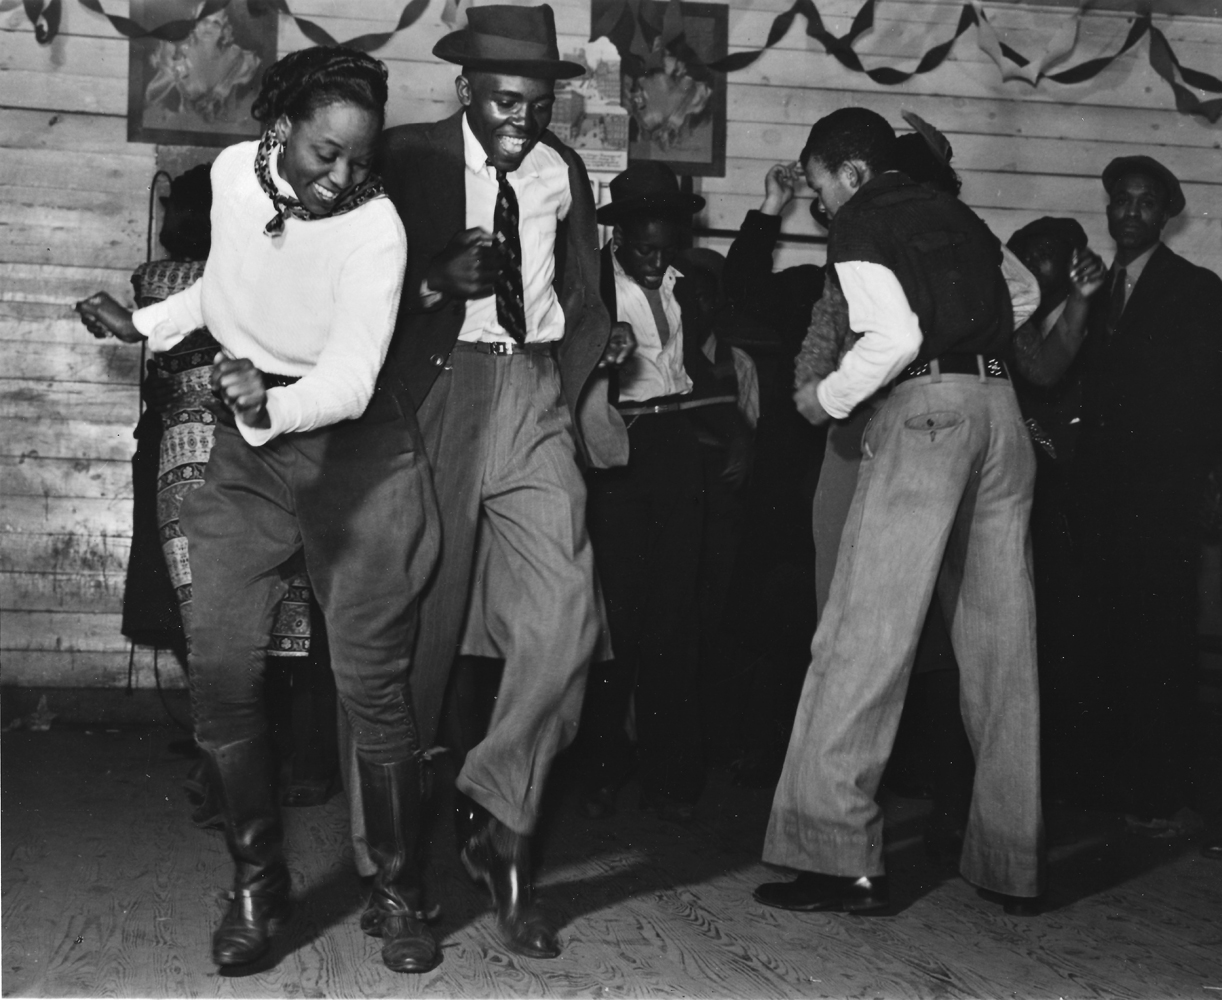 Marion Post Wolcott, Jitterbugging in a Juke Joint, Clarksdale, MS, 1939